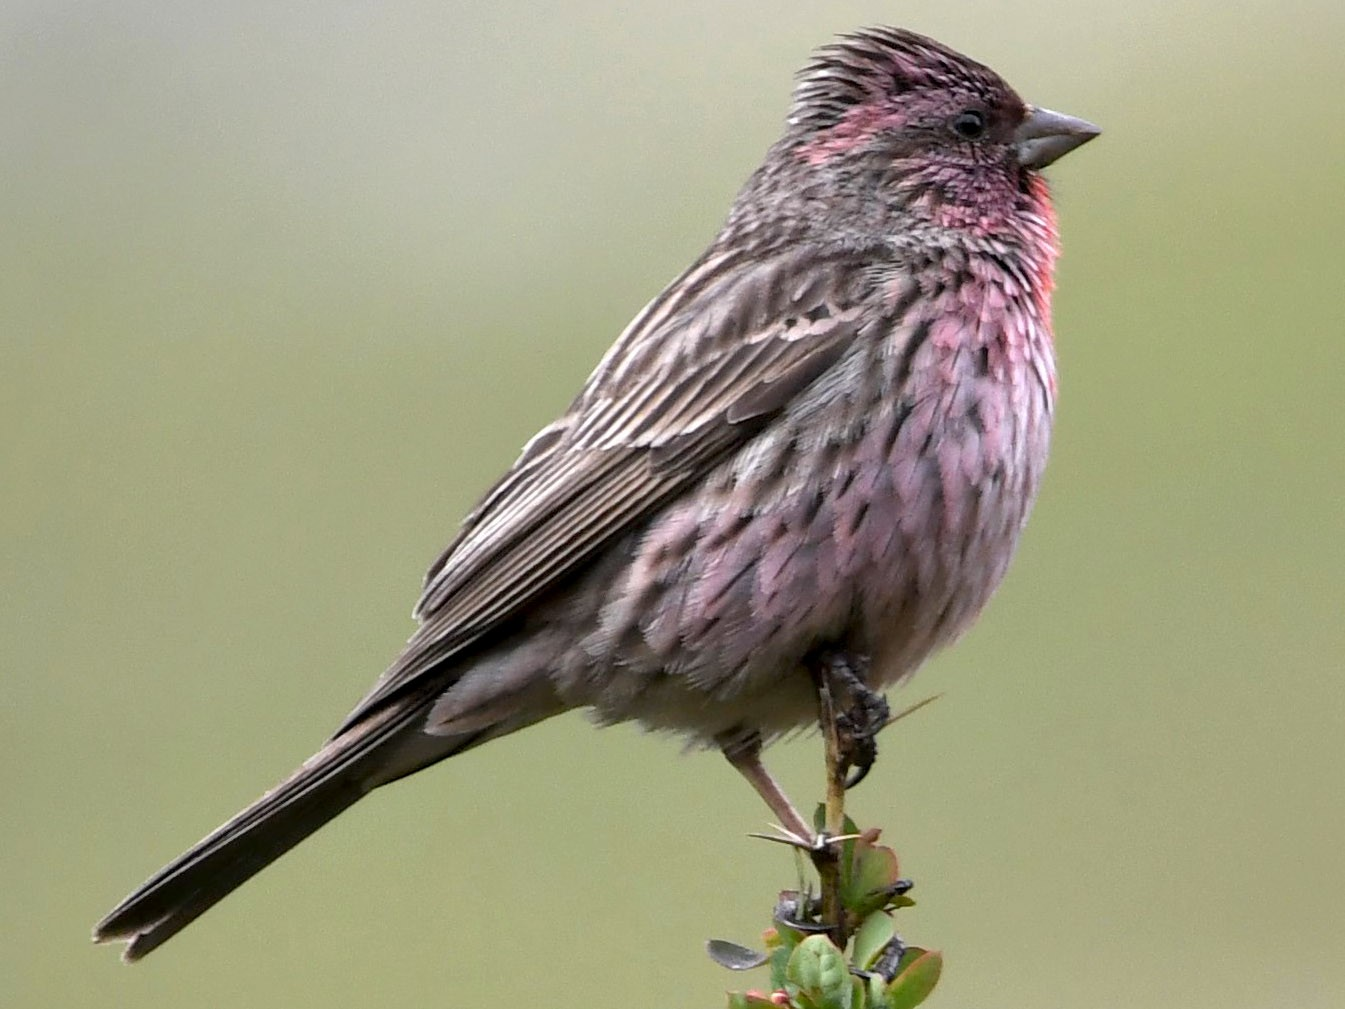 Himalayan Beautiful Rosefinch - Pradeep Sangwan